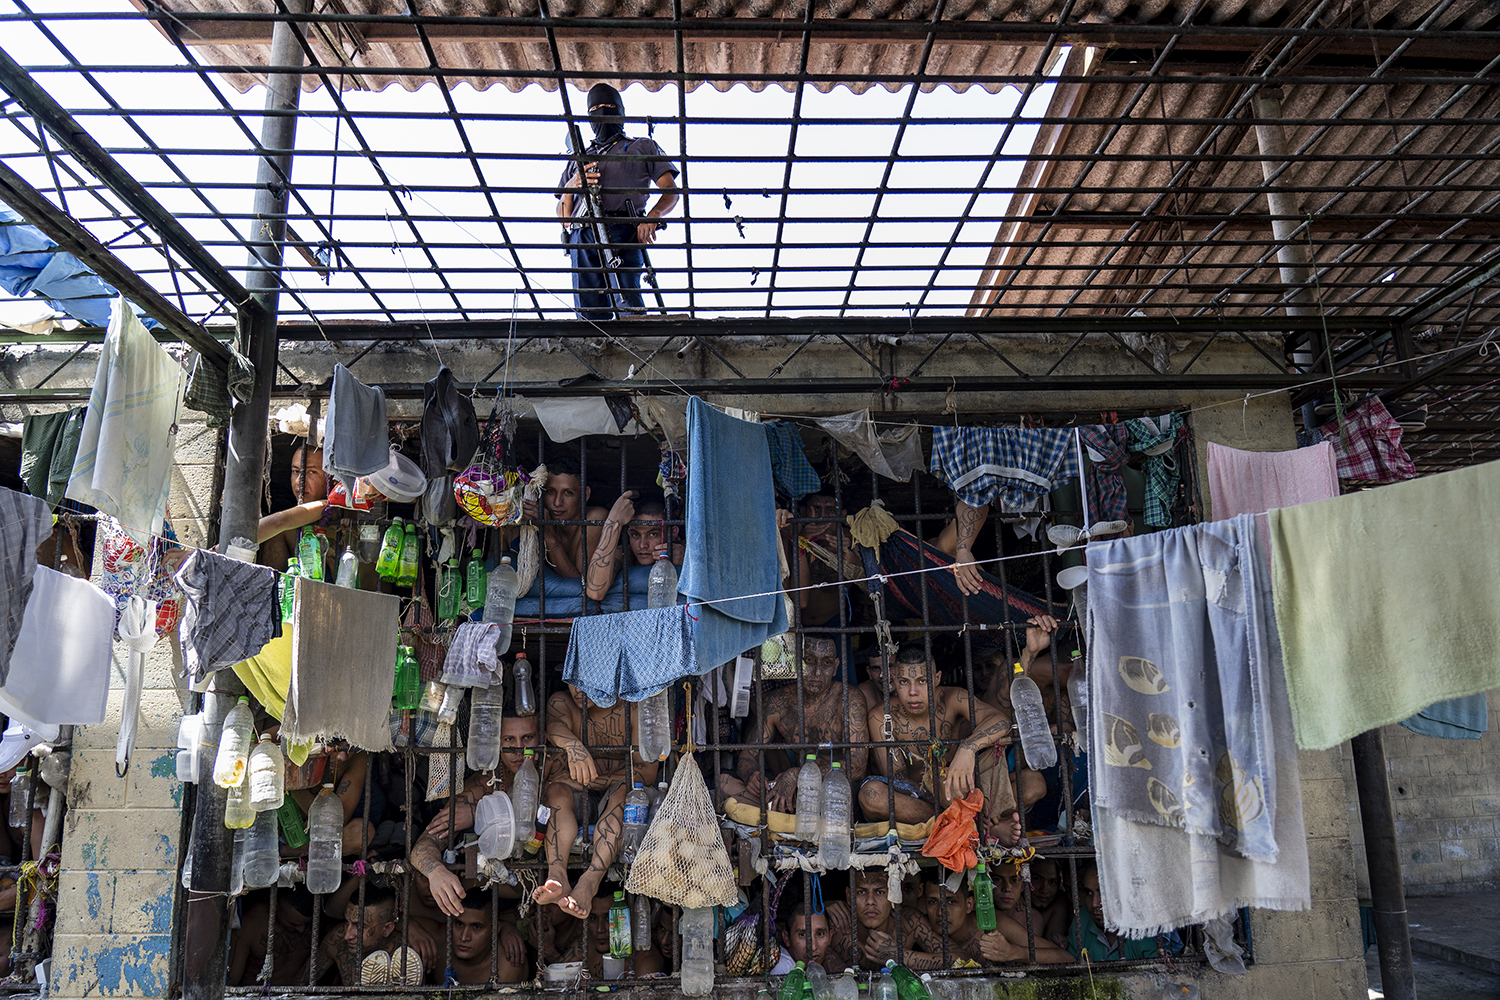 Inmates look out of an overcrowded cell while a prison officer wearing a balaclava to protect his identity stands guard above at the Penal Center of Quezaltepeque on Nov. 5, 2018.